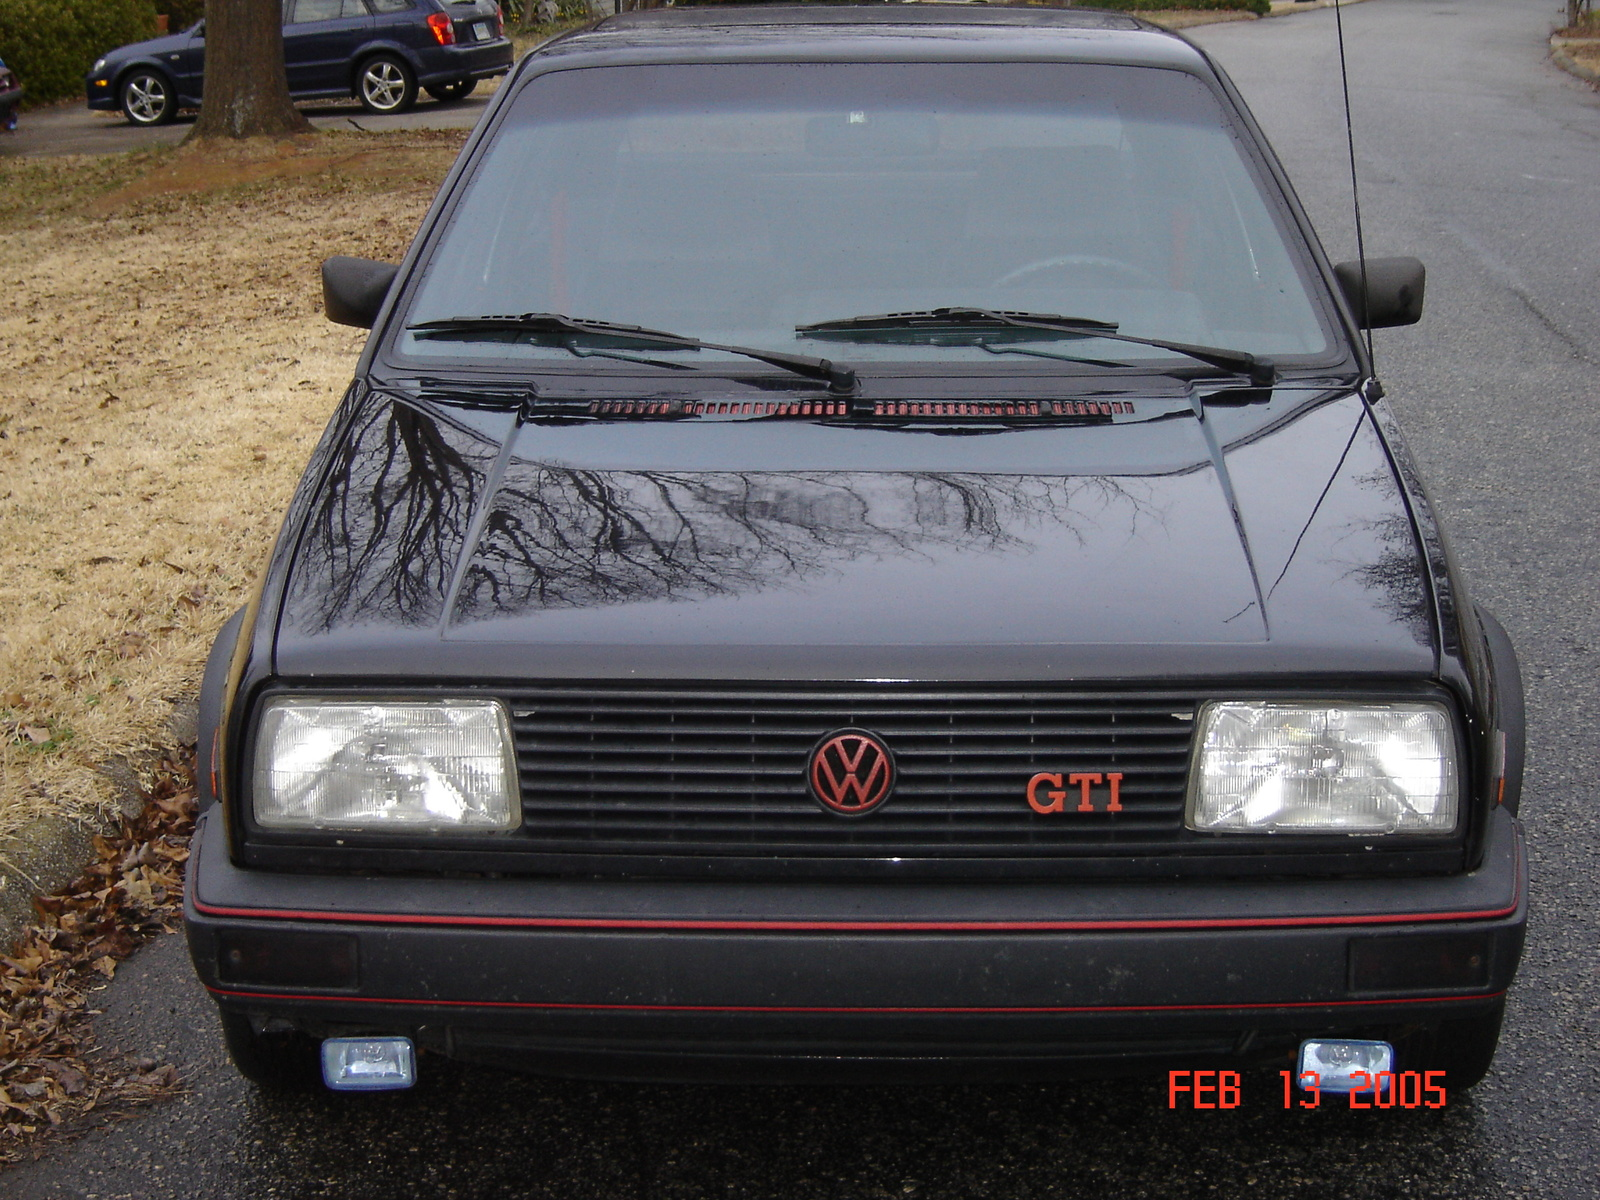 1986 Mercedes 560sec Amg 6 0 Widebody together with Diffuseur Pare Chocs Arriere Design Abs Plastique Look M3 1186 besides 450sl besides 1998 Volkswagen Jetta Reviews C5910 moreover Showthread. on 1990 volkswagen cabriolet